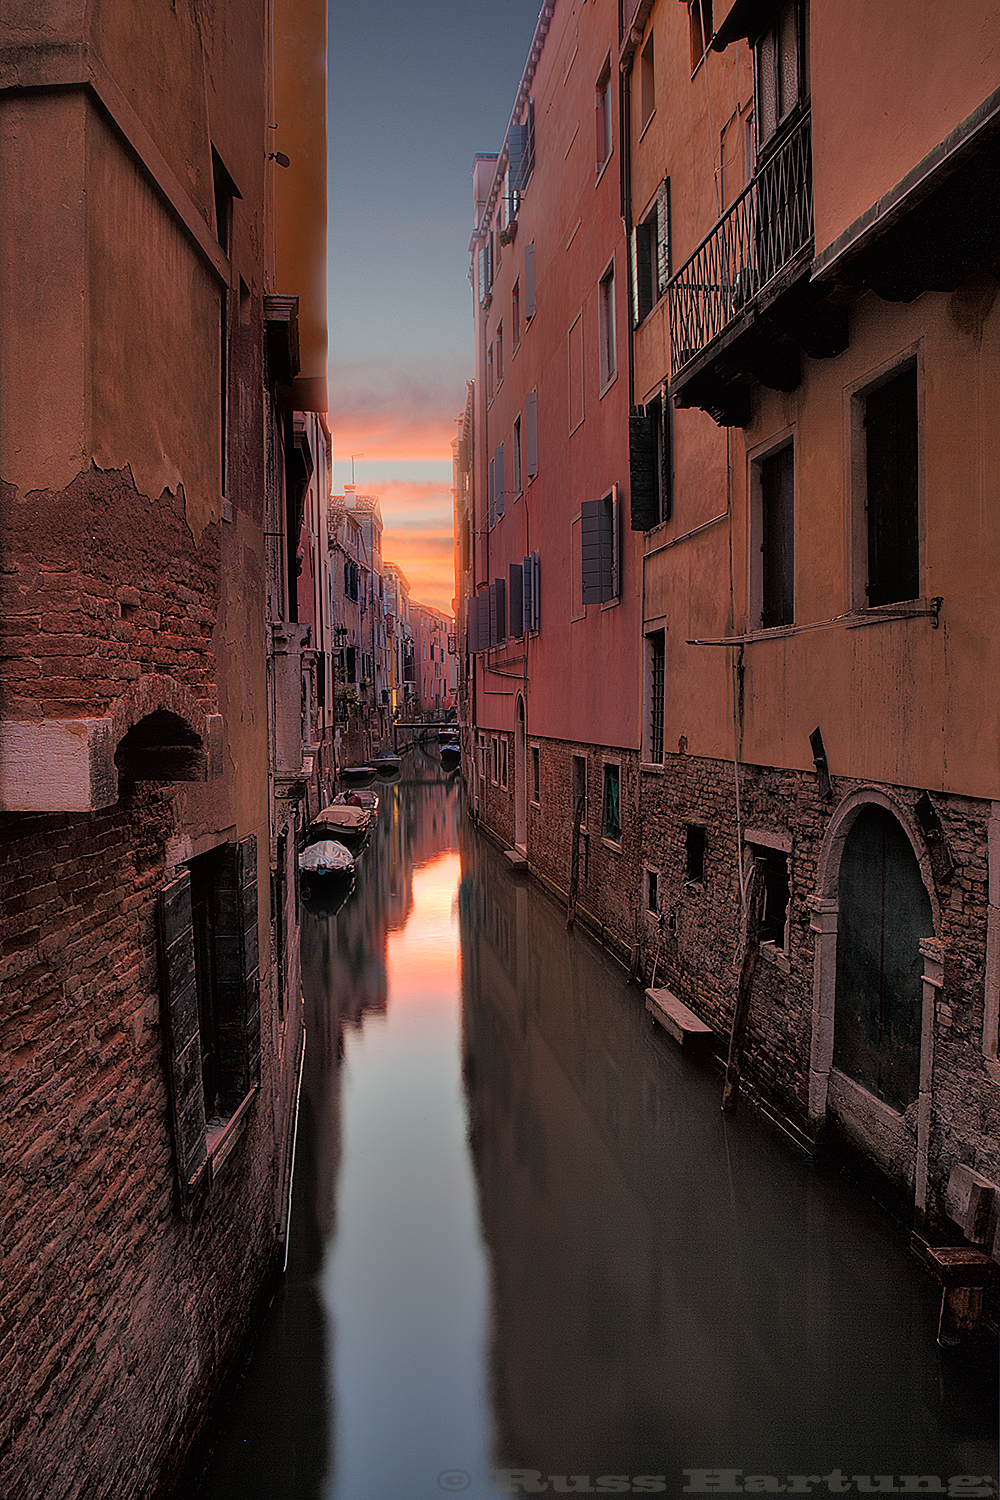 Sunrise over one of the many canals in Venice, Italy.